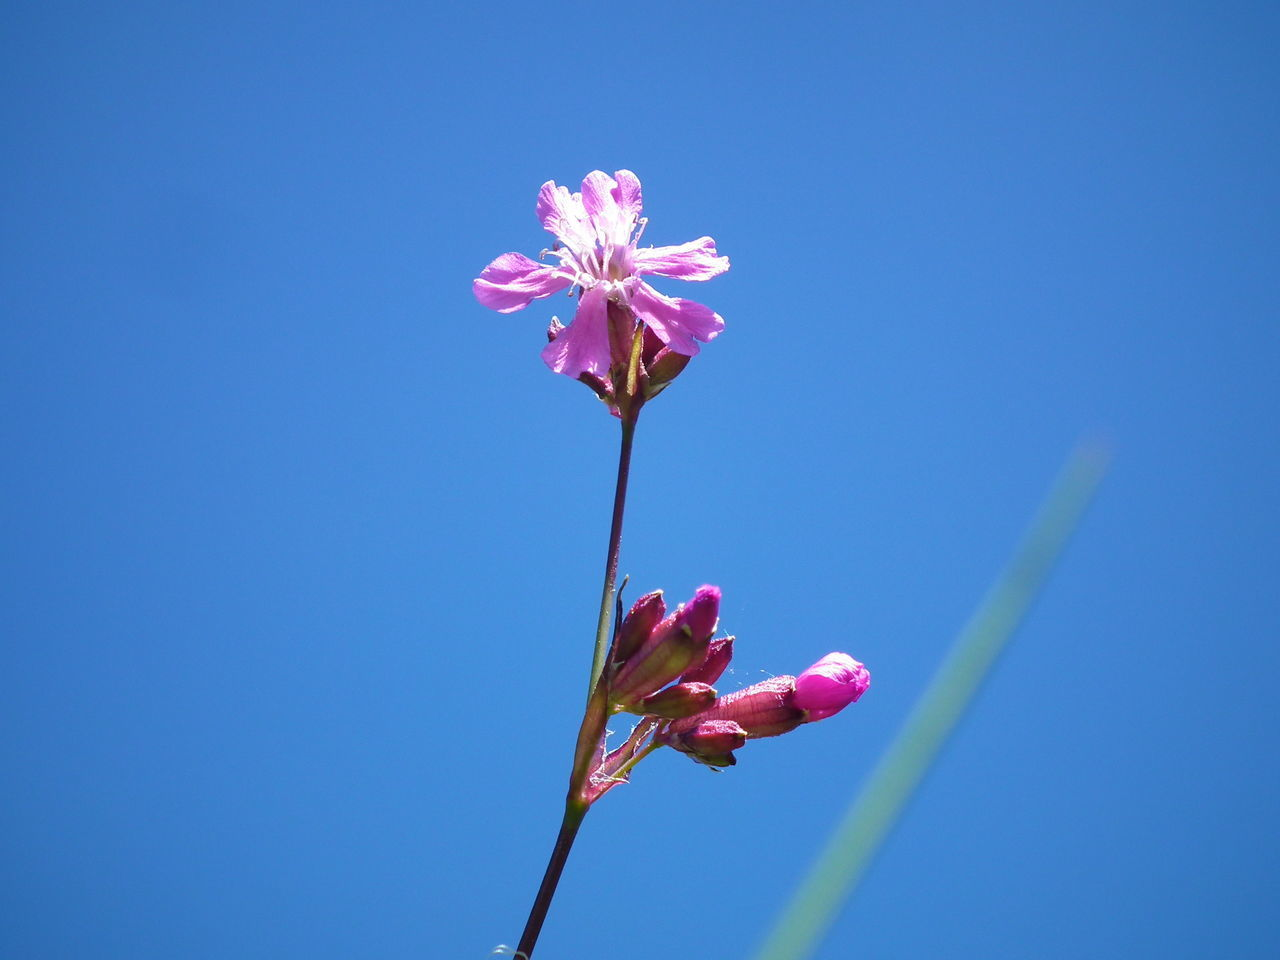 flower, pink color, petal, fragility, nature, beauty in nature, blue, copy space, freshness, clear sky, no people, flower head, growth, day, outdoors, plant, blooming, low angle view, close-up, sky